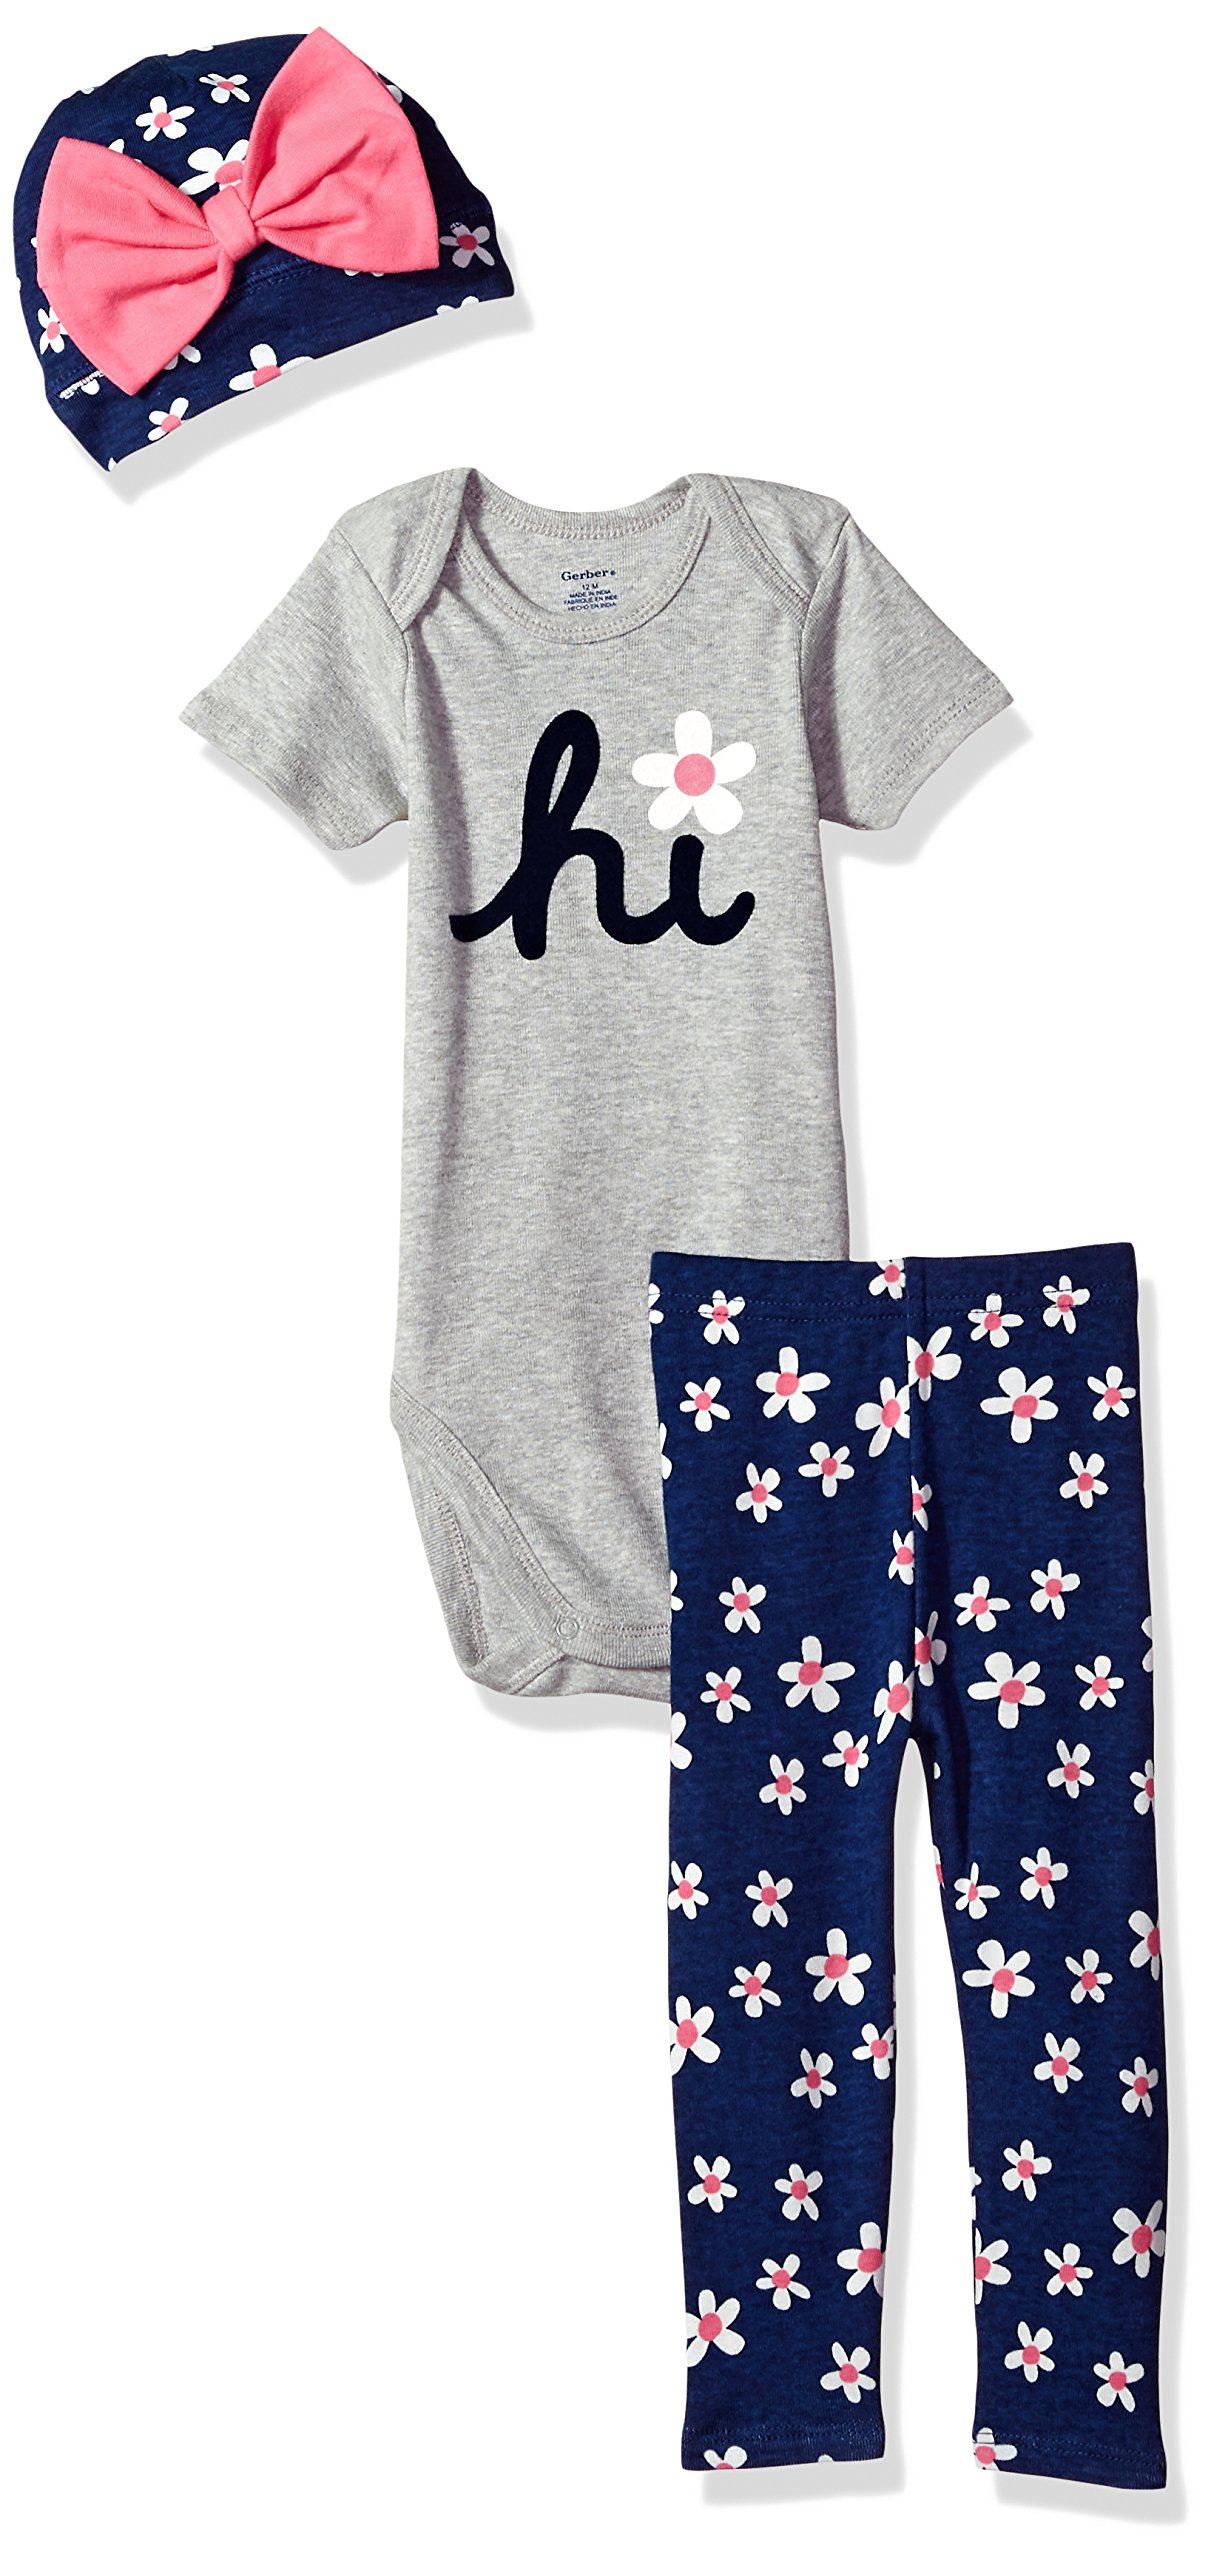 676b121d4 Best Rated in Baby Girls' Clothing Sets & Helpful Customer Reviews ...